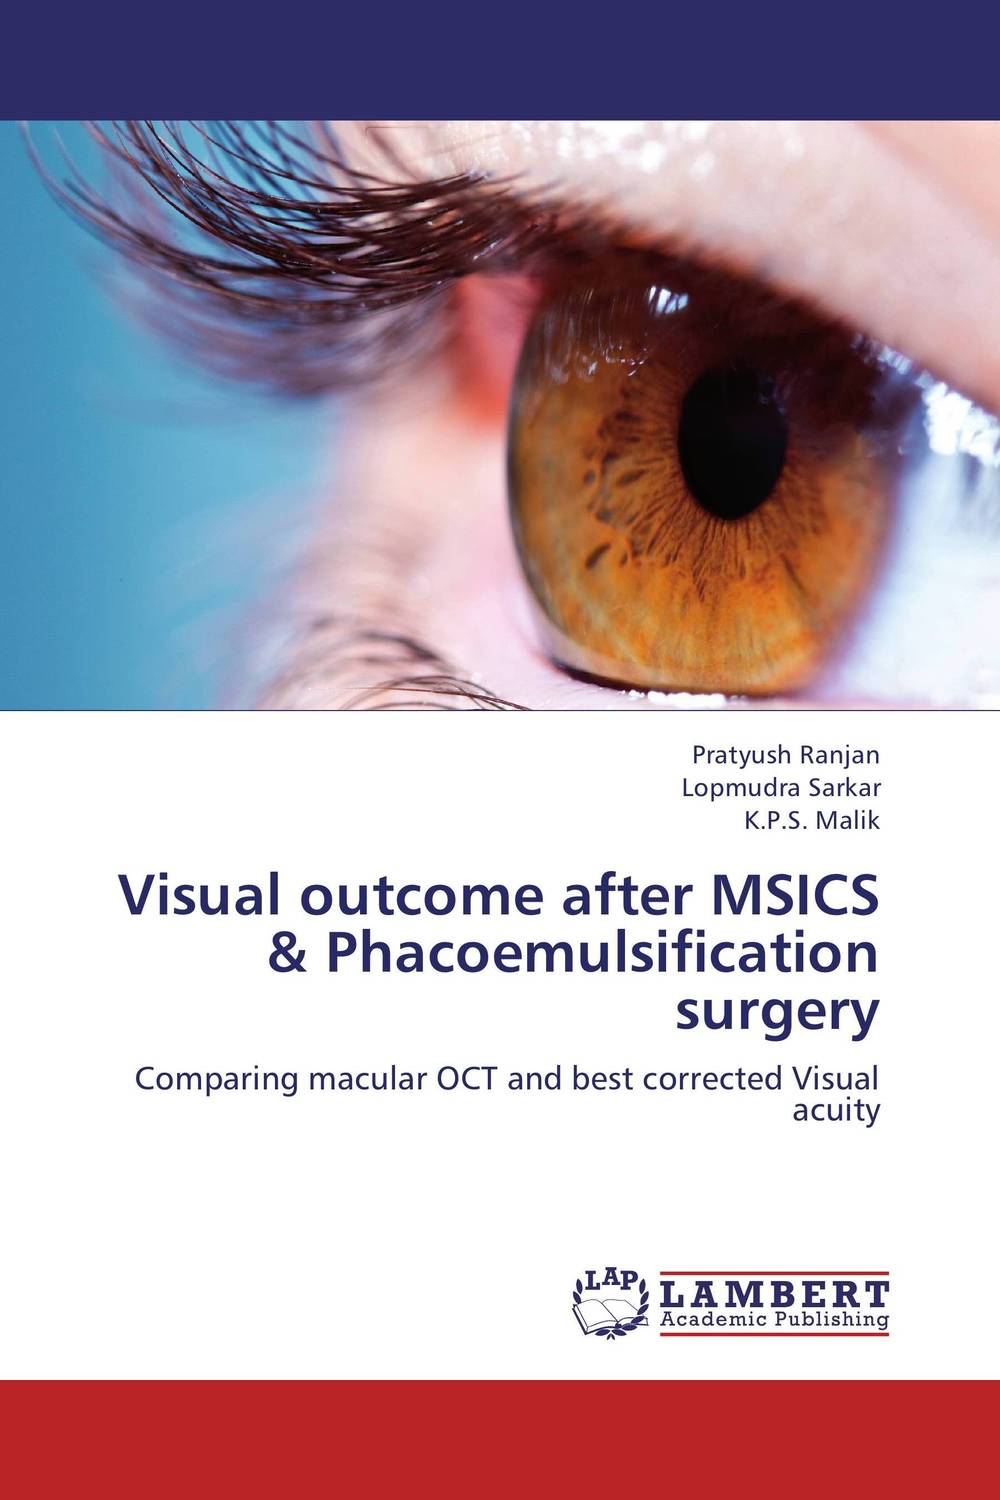 Visual outcome after MSICS & Phacoemulsification surgery the operative